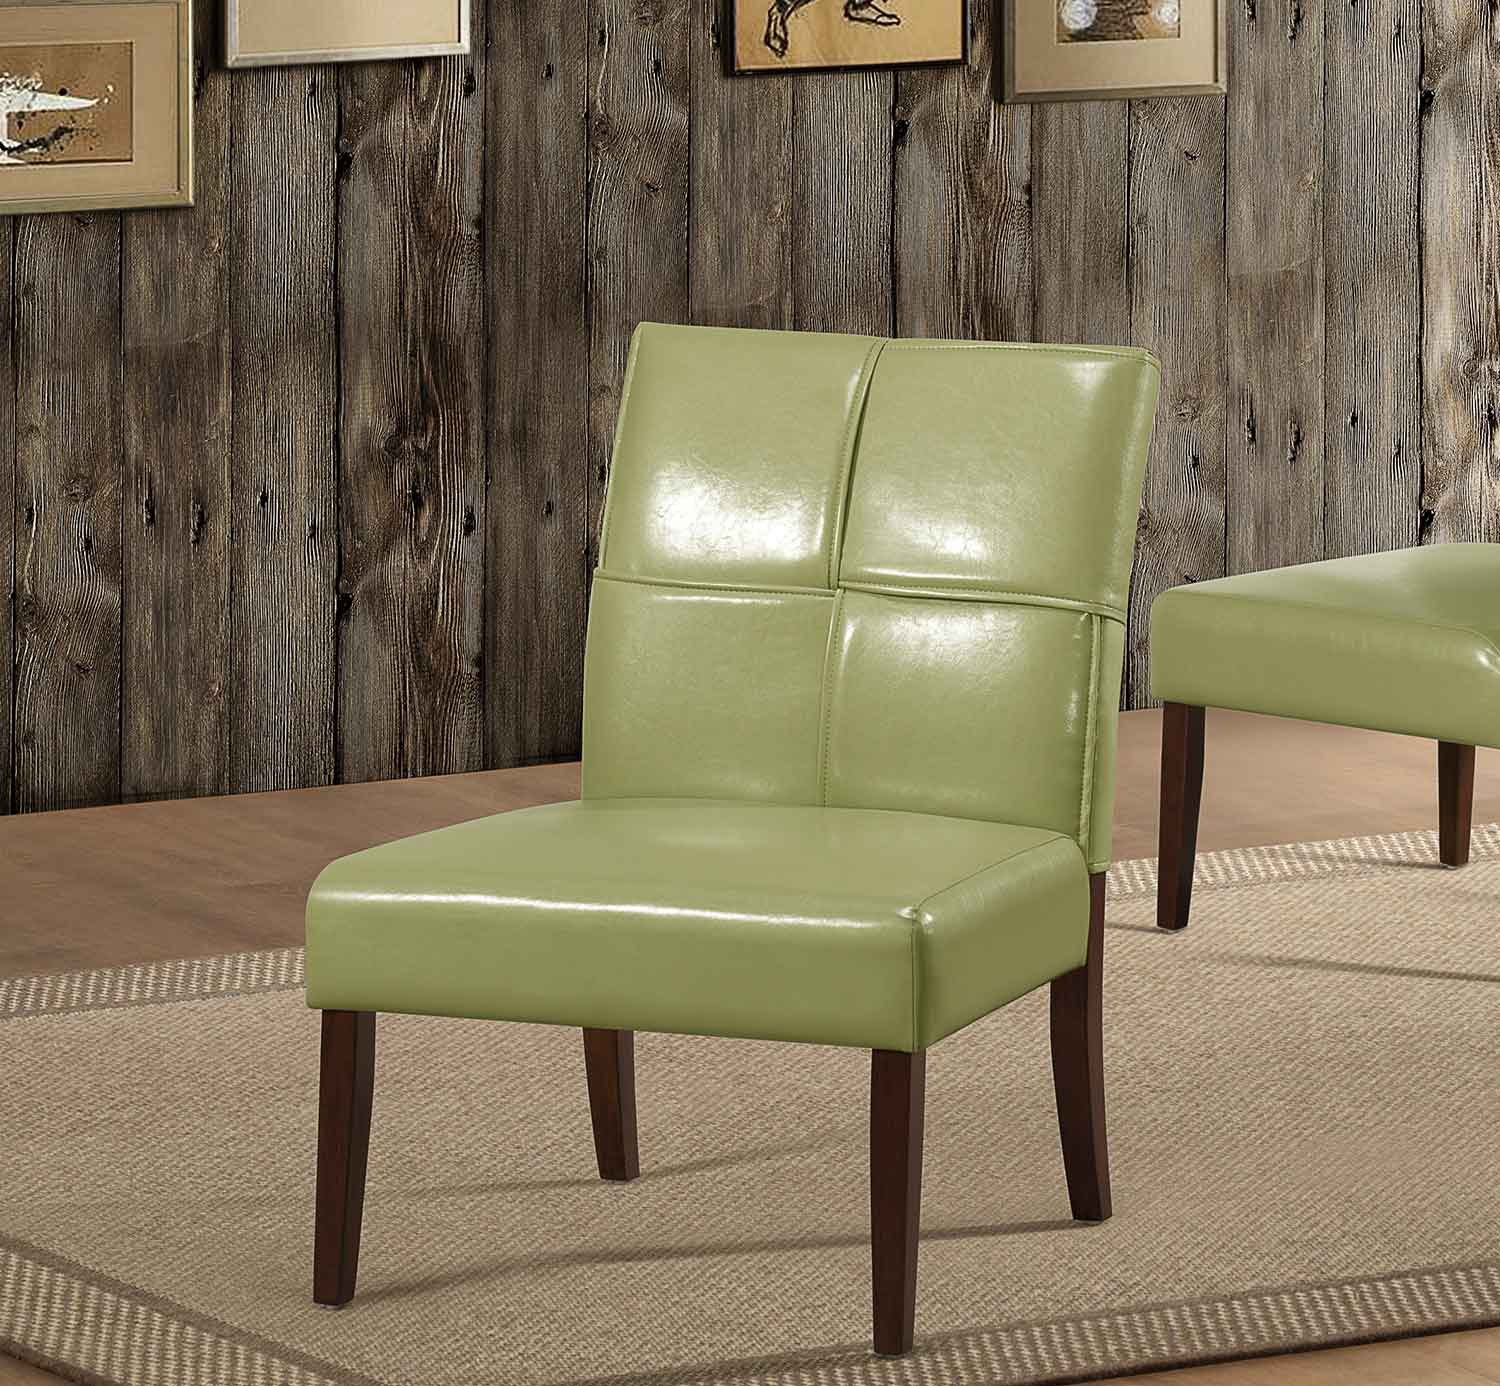 Homelegance Oriana Accent Chair - Green